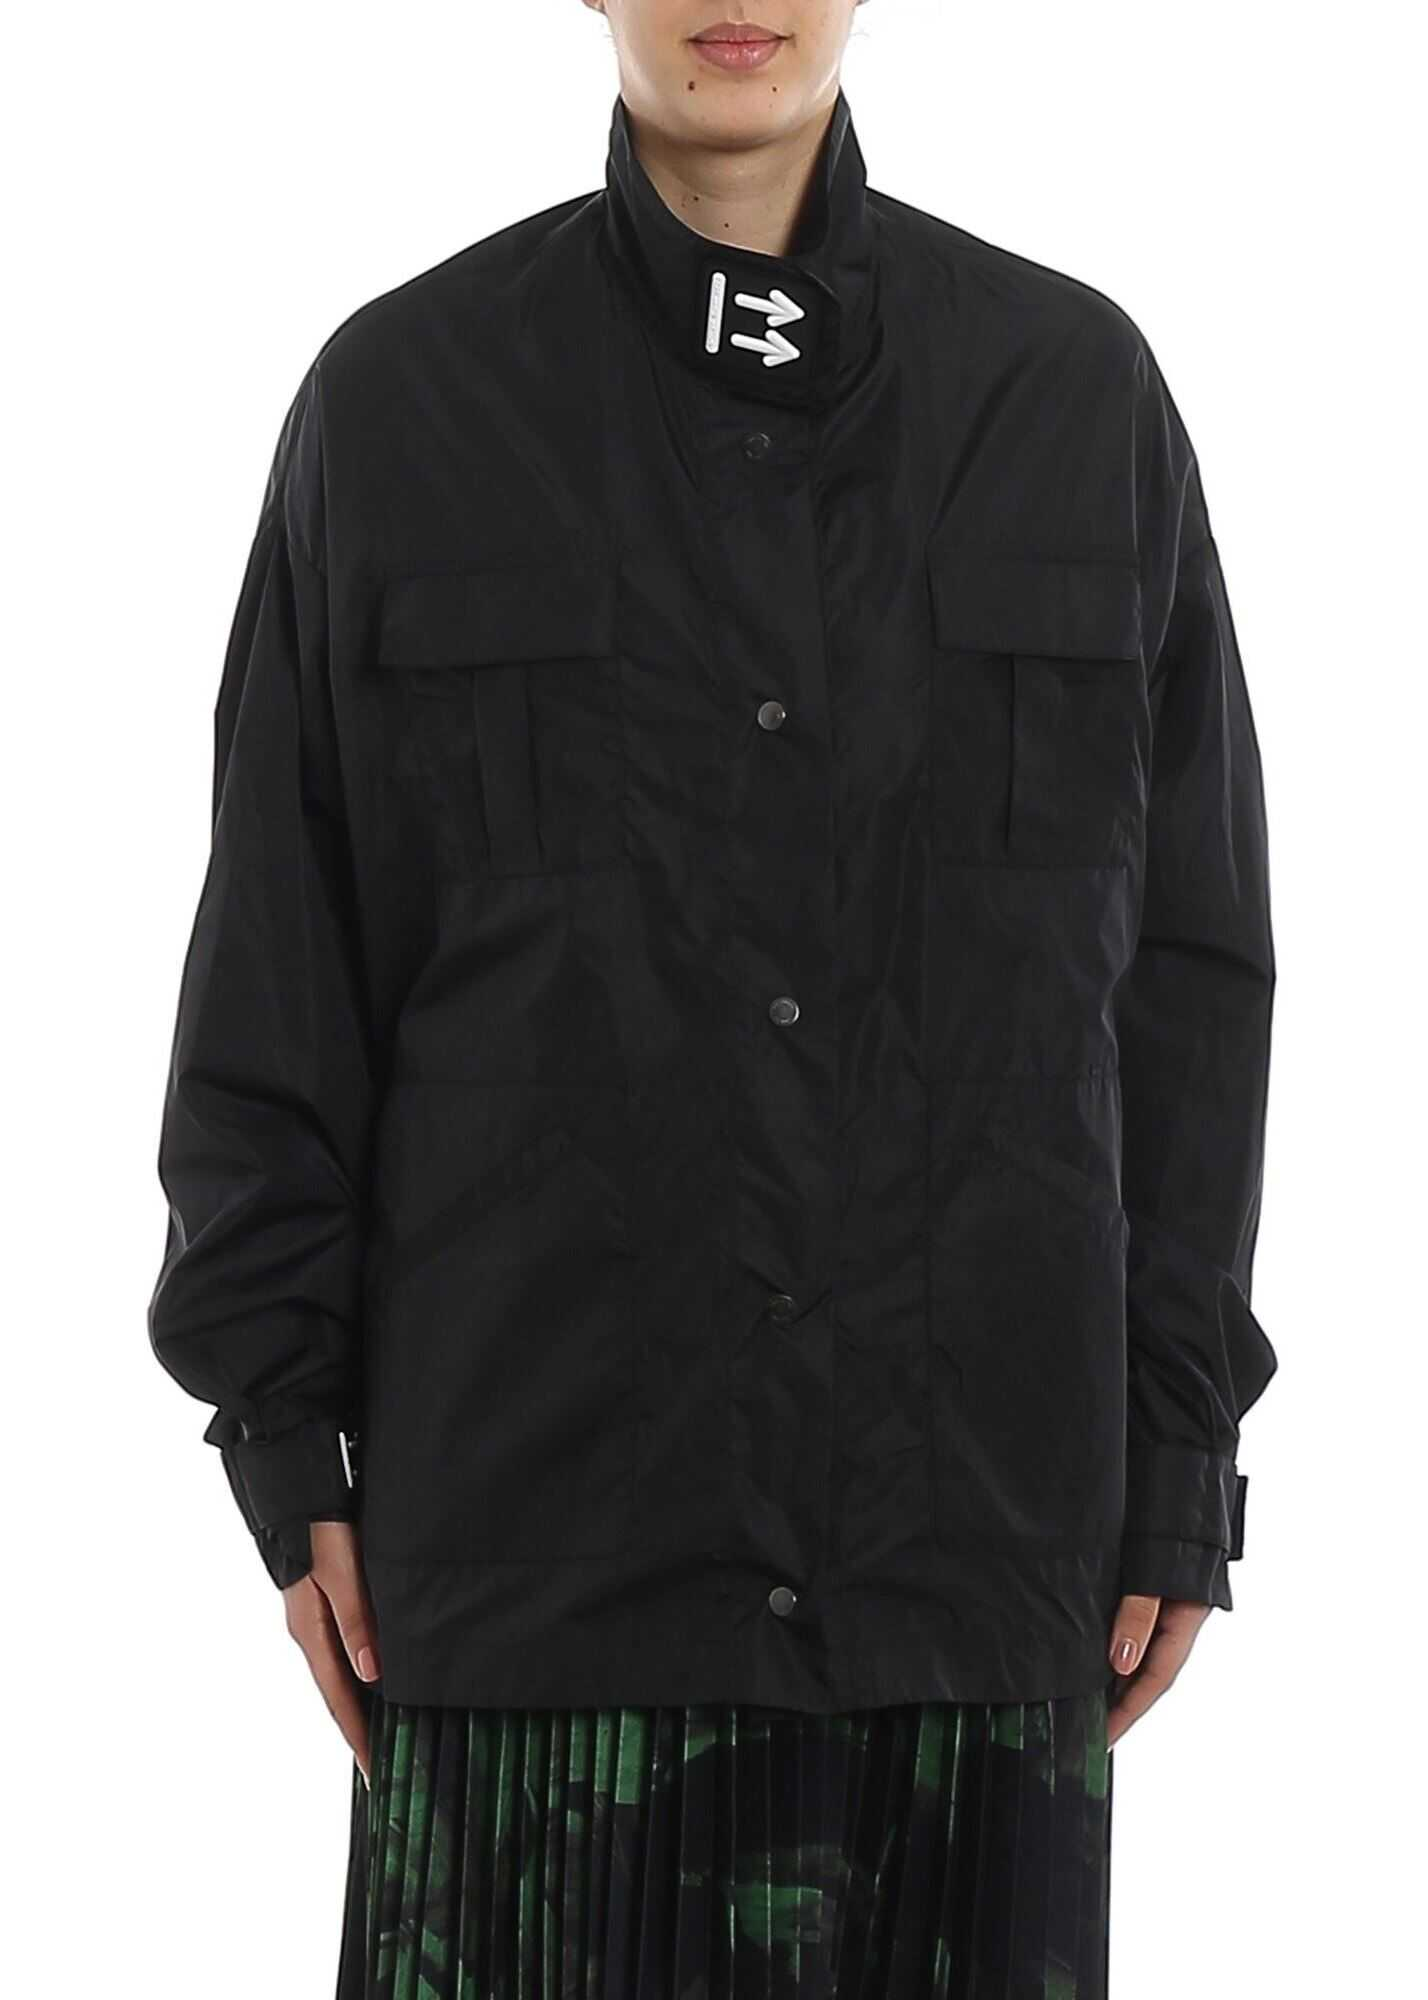 Off-White Logo Print Oversized Jacket Black